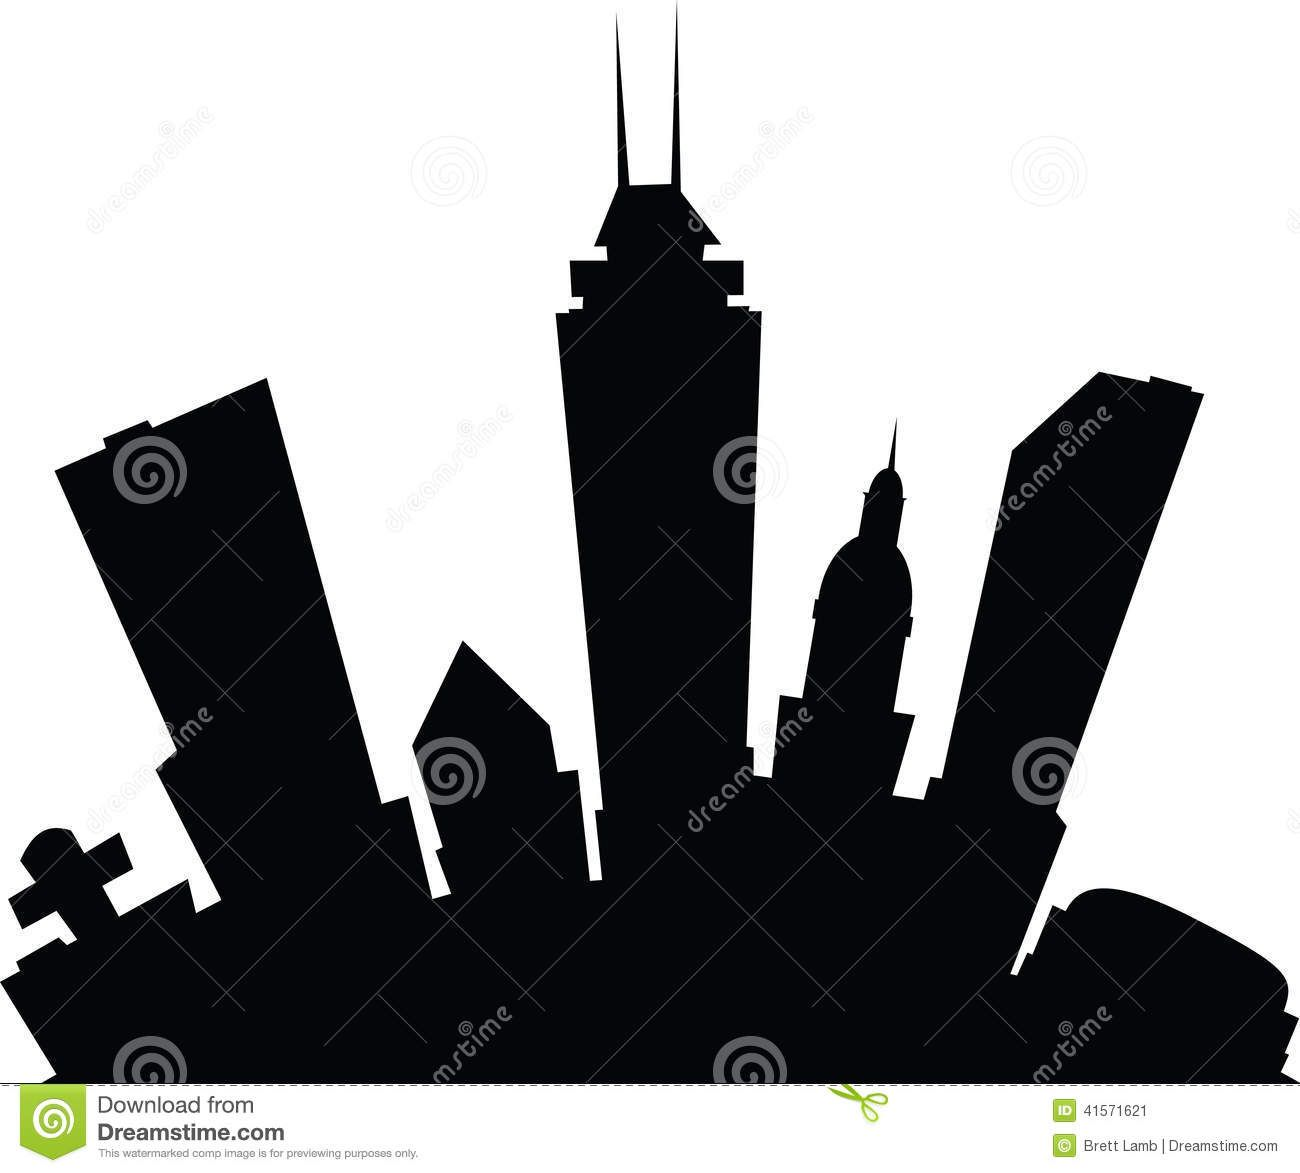 Downtown indianapolis clipart banner royalty free stock Cartoon Indianapolis Stock Illustration - Image: 41571621 | indy ... banner royalty free stock